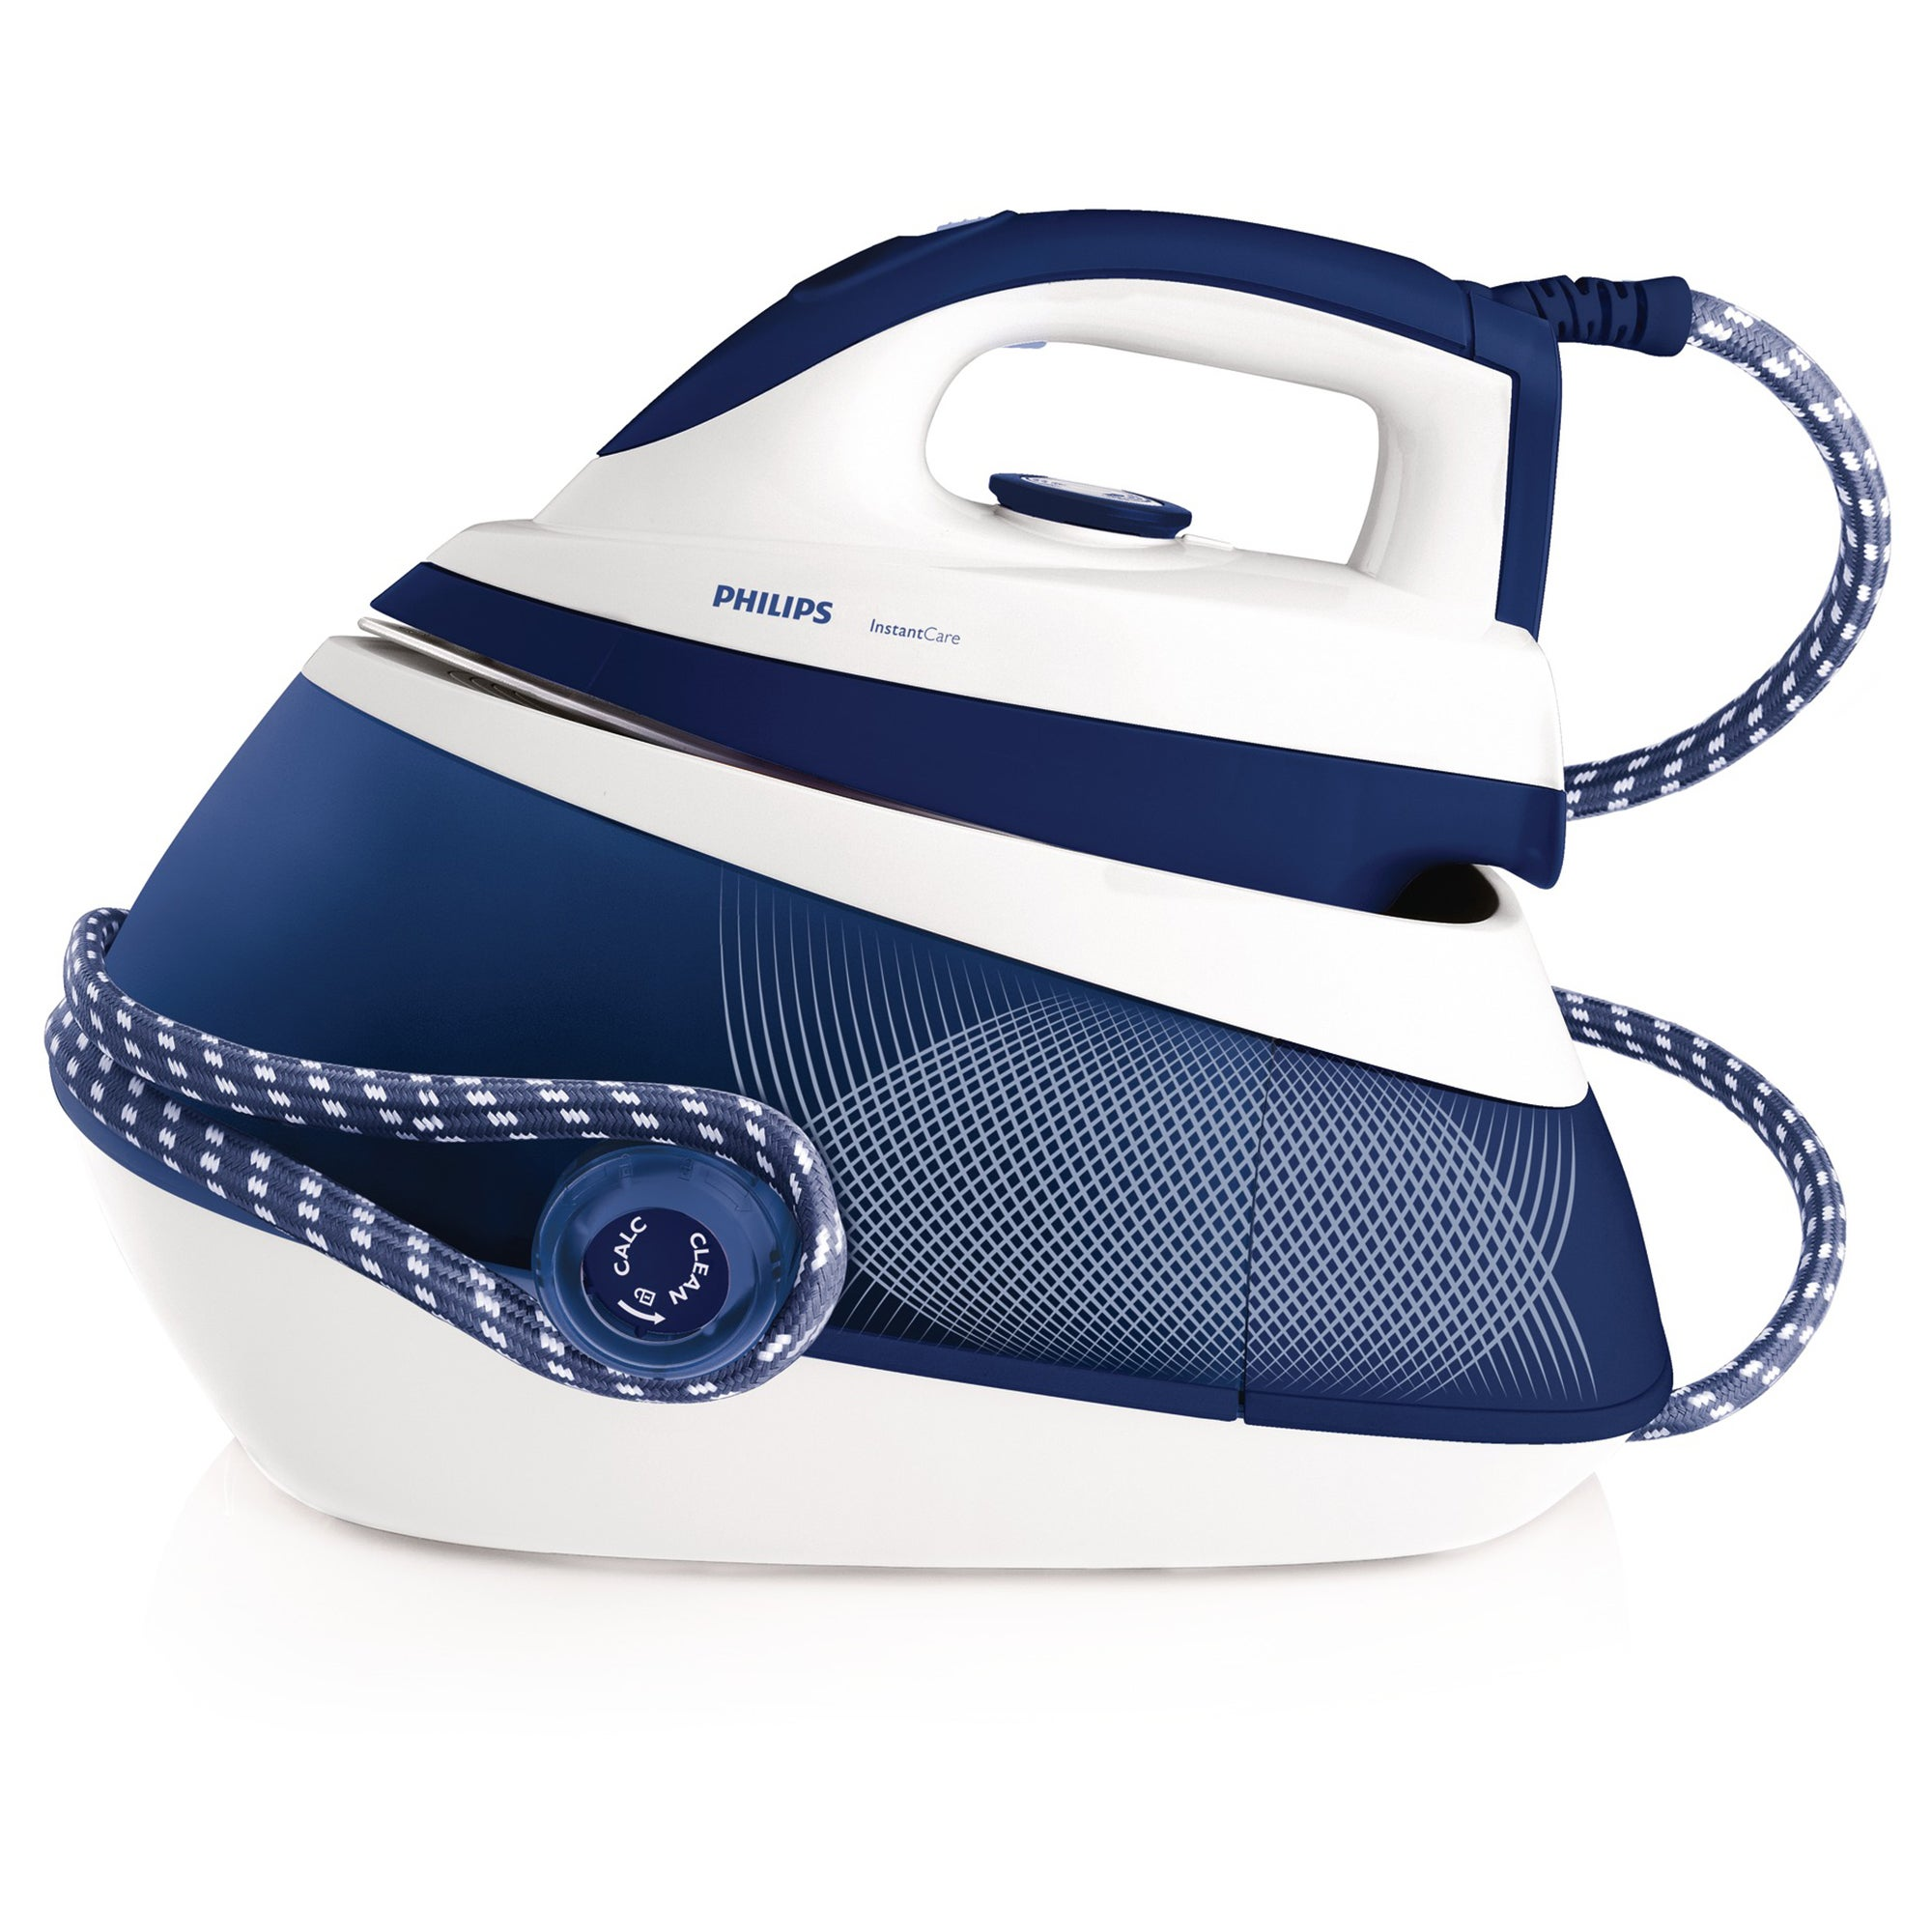 Phillips InstantCare 2400w Steam Generator Iron